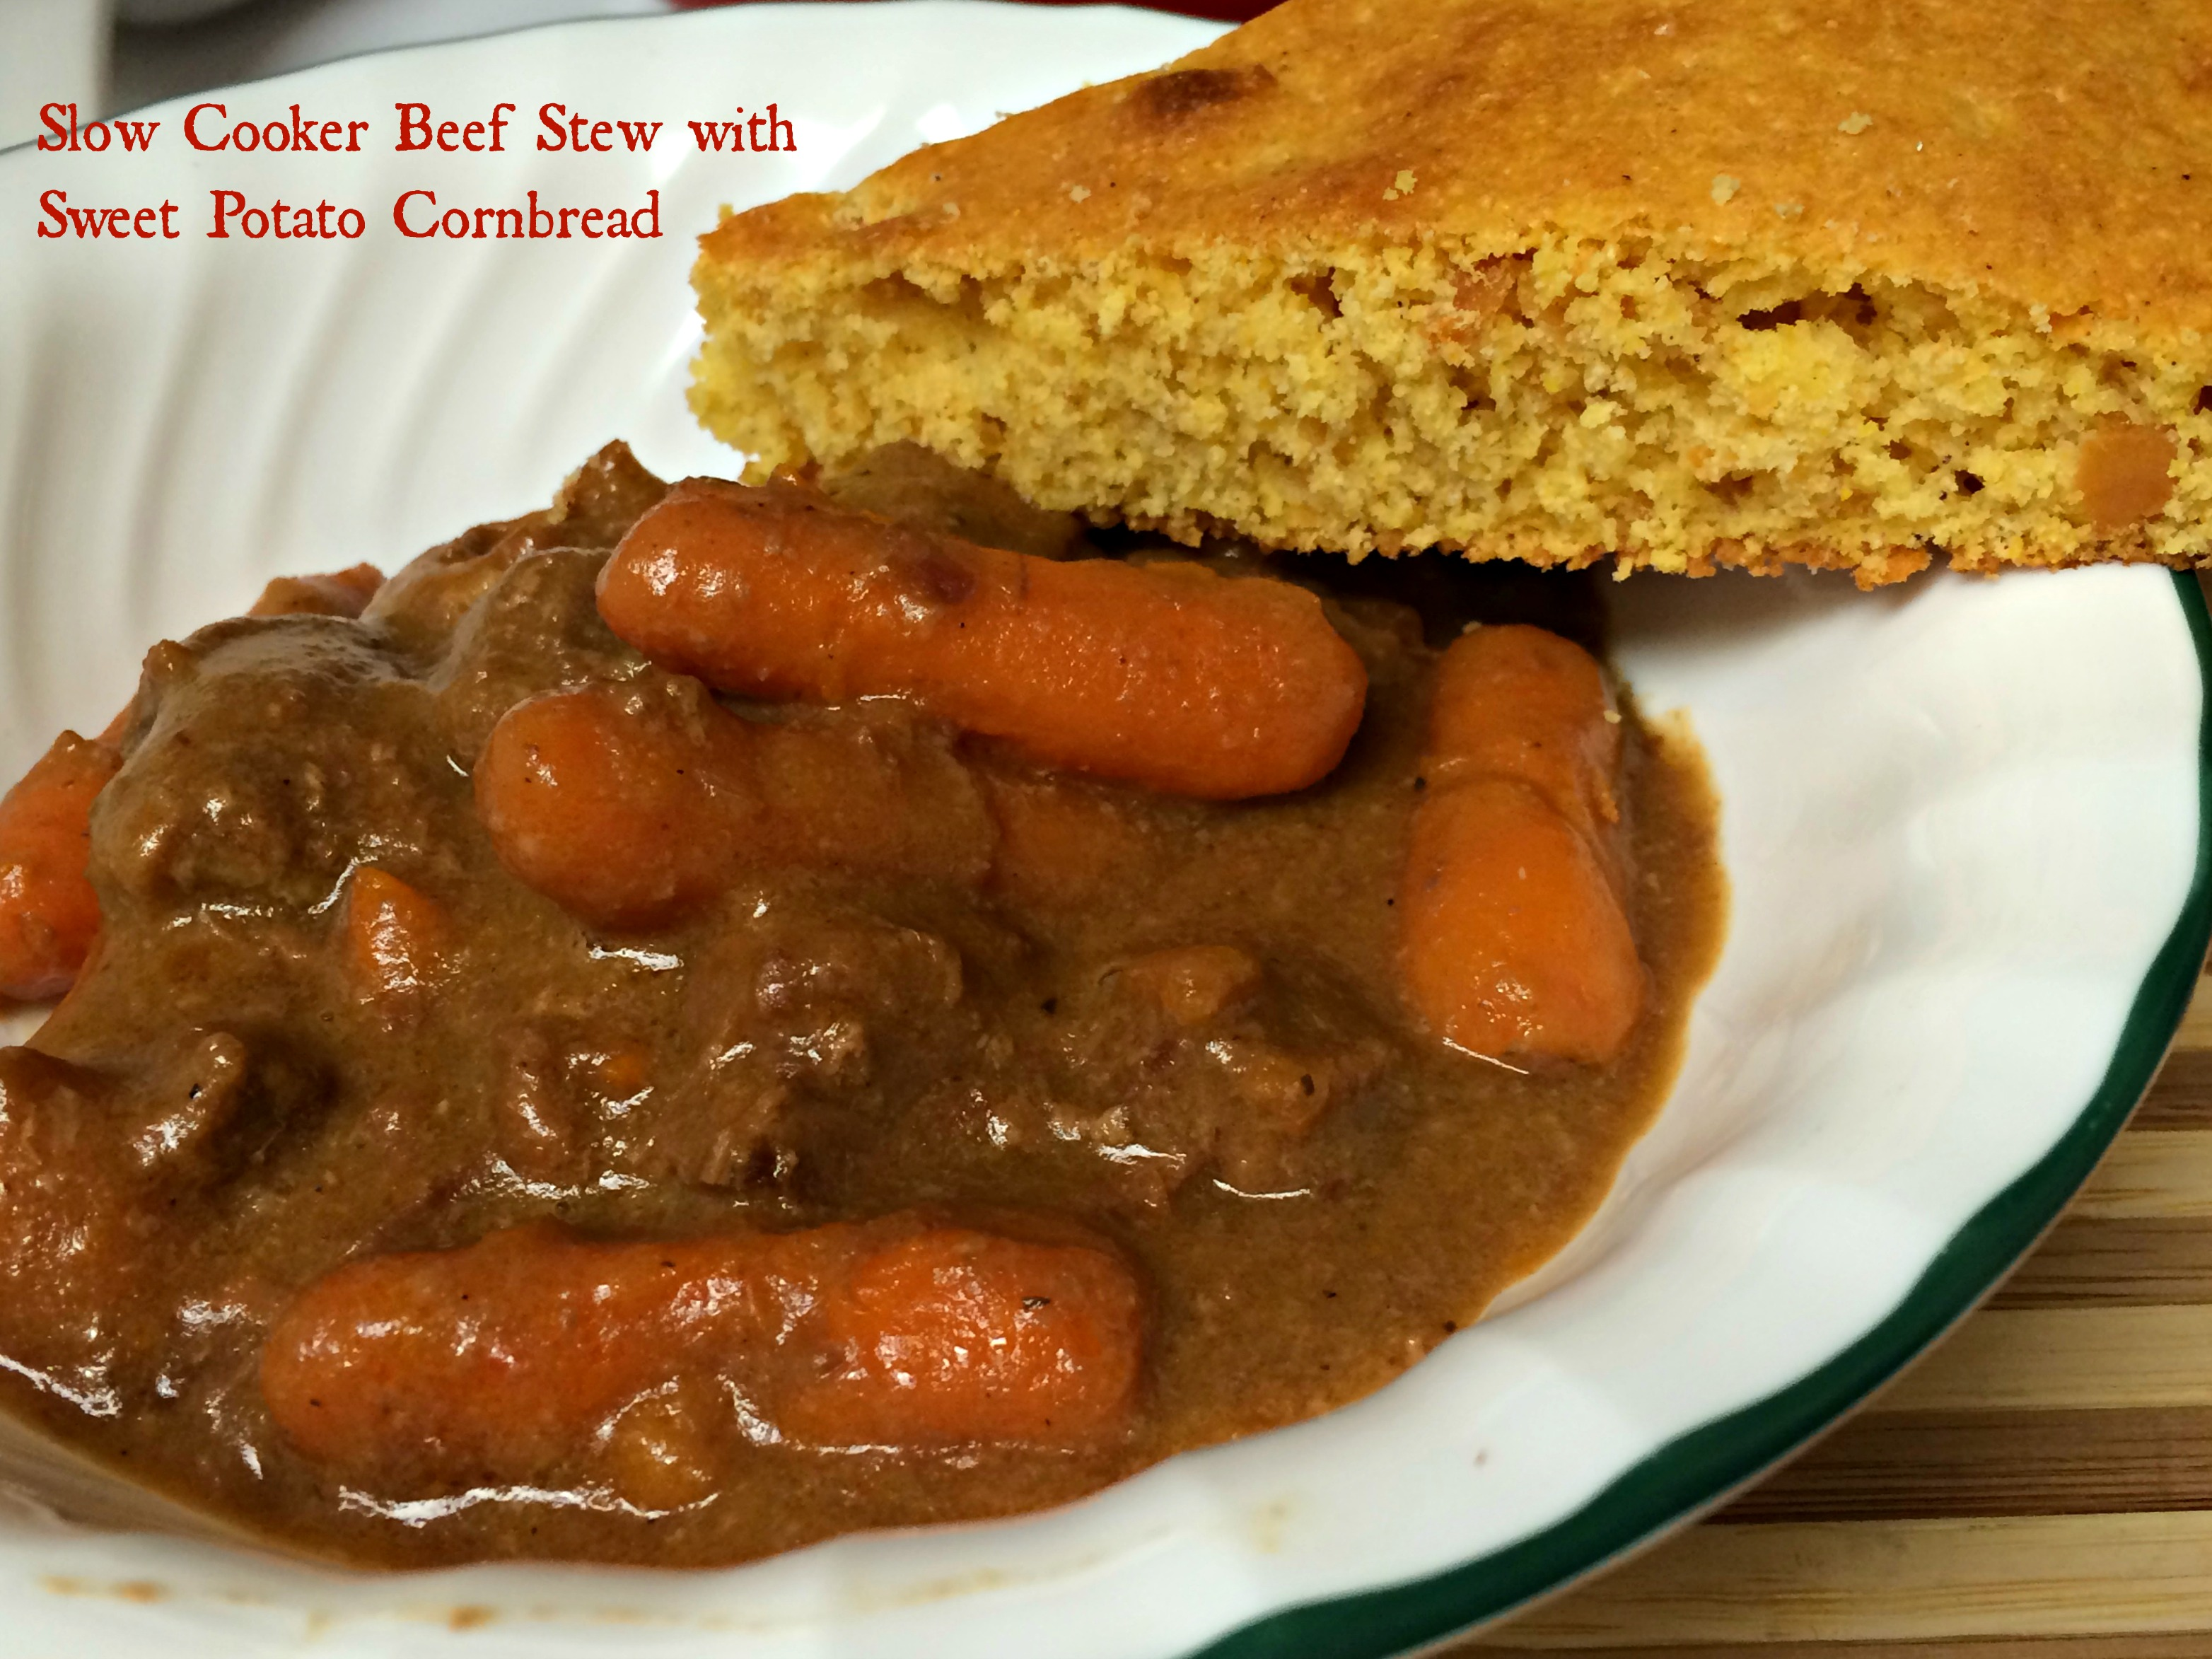 Slow Cooker Beef Stew with Sweet Potato Cornbread | Arl's World